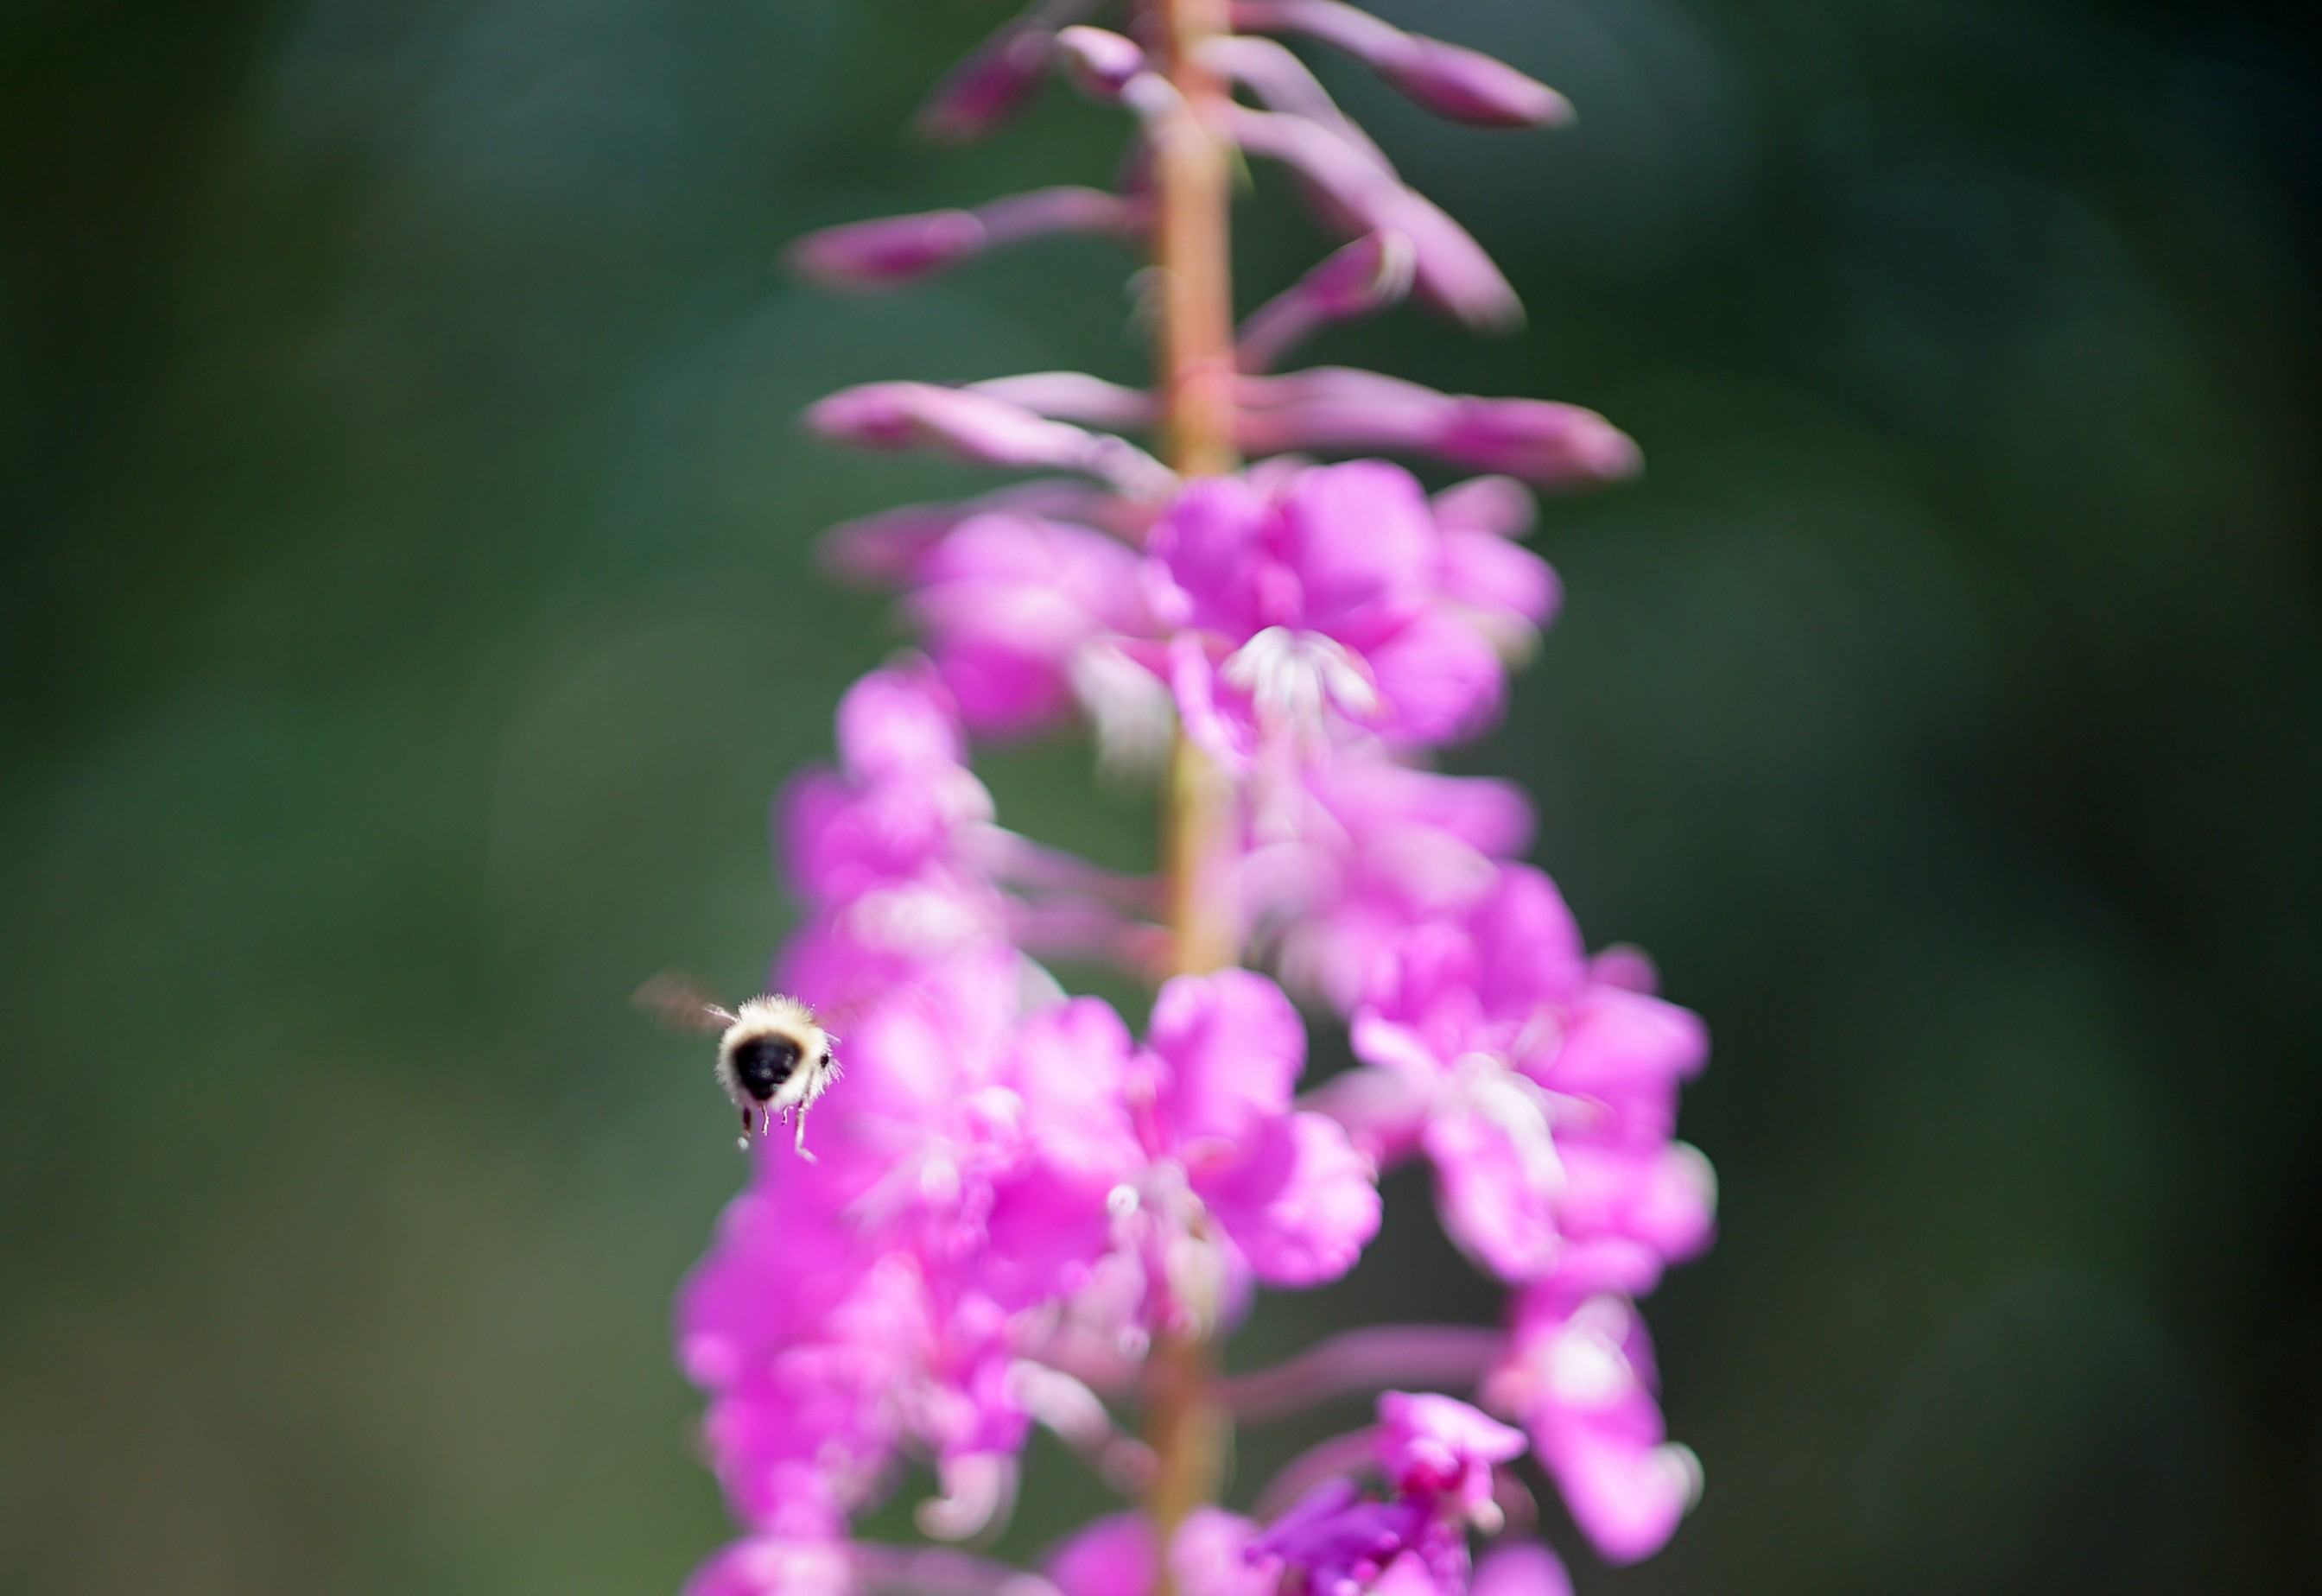 a bumble bee flying away from a purple flower